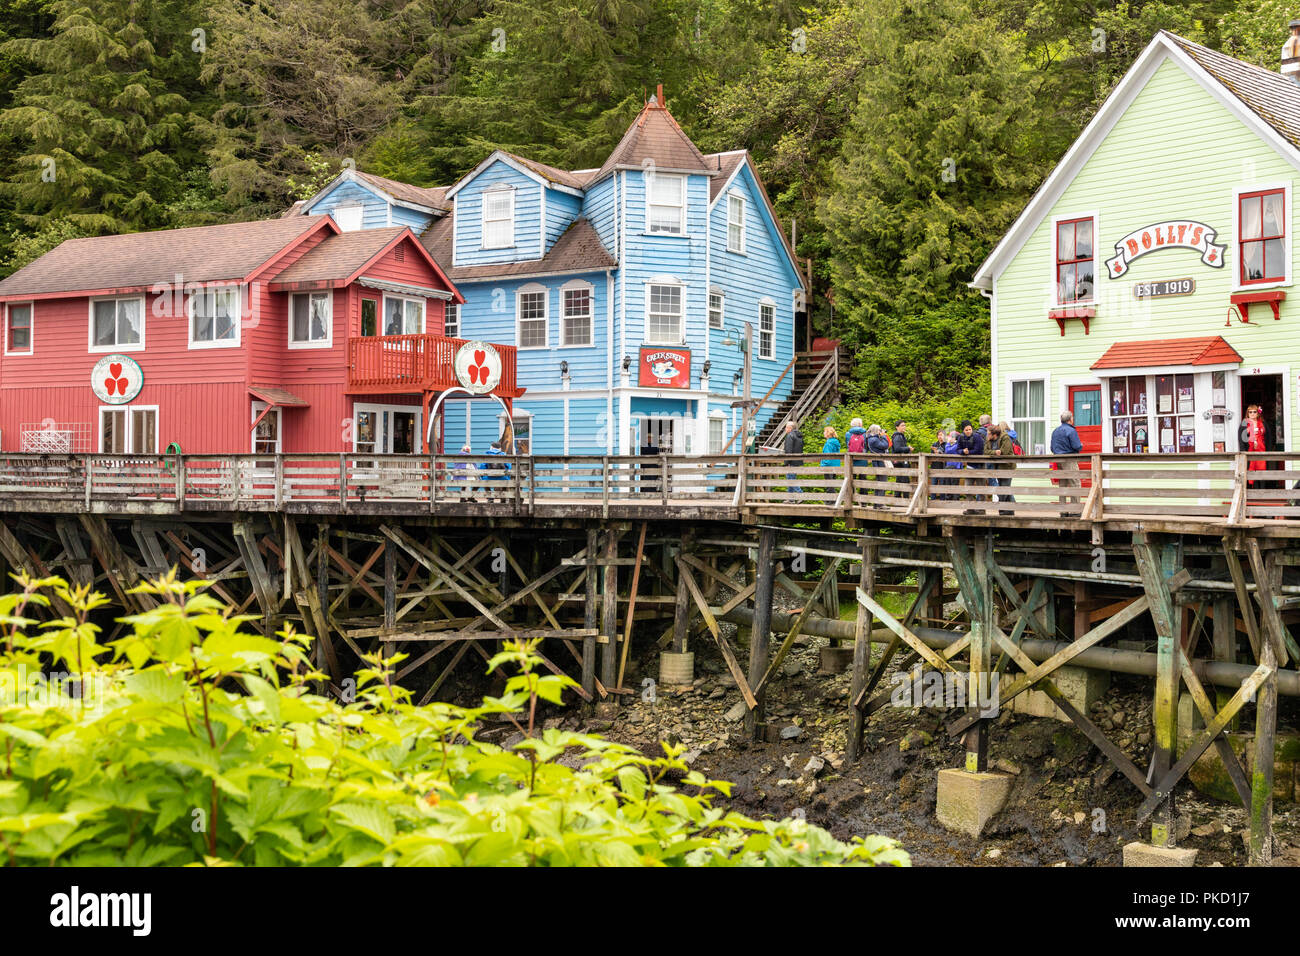 Some of the old timber houses in Creek Street built on stilts above the Ketchikan Creek in downtown Ketchikan, Alaska USA - Stock Image